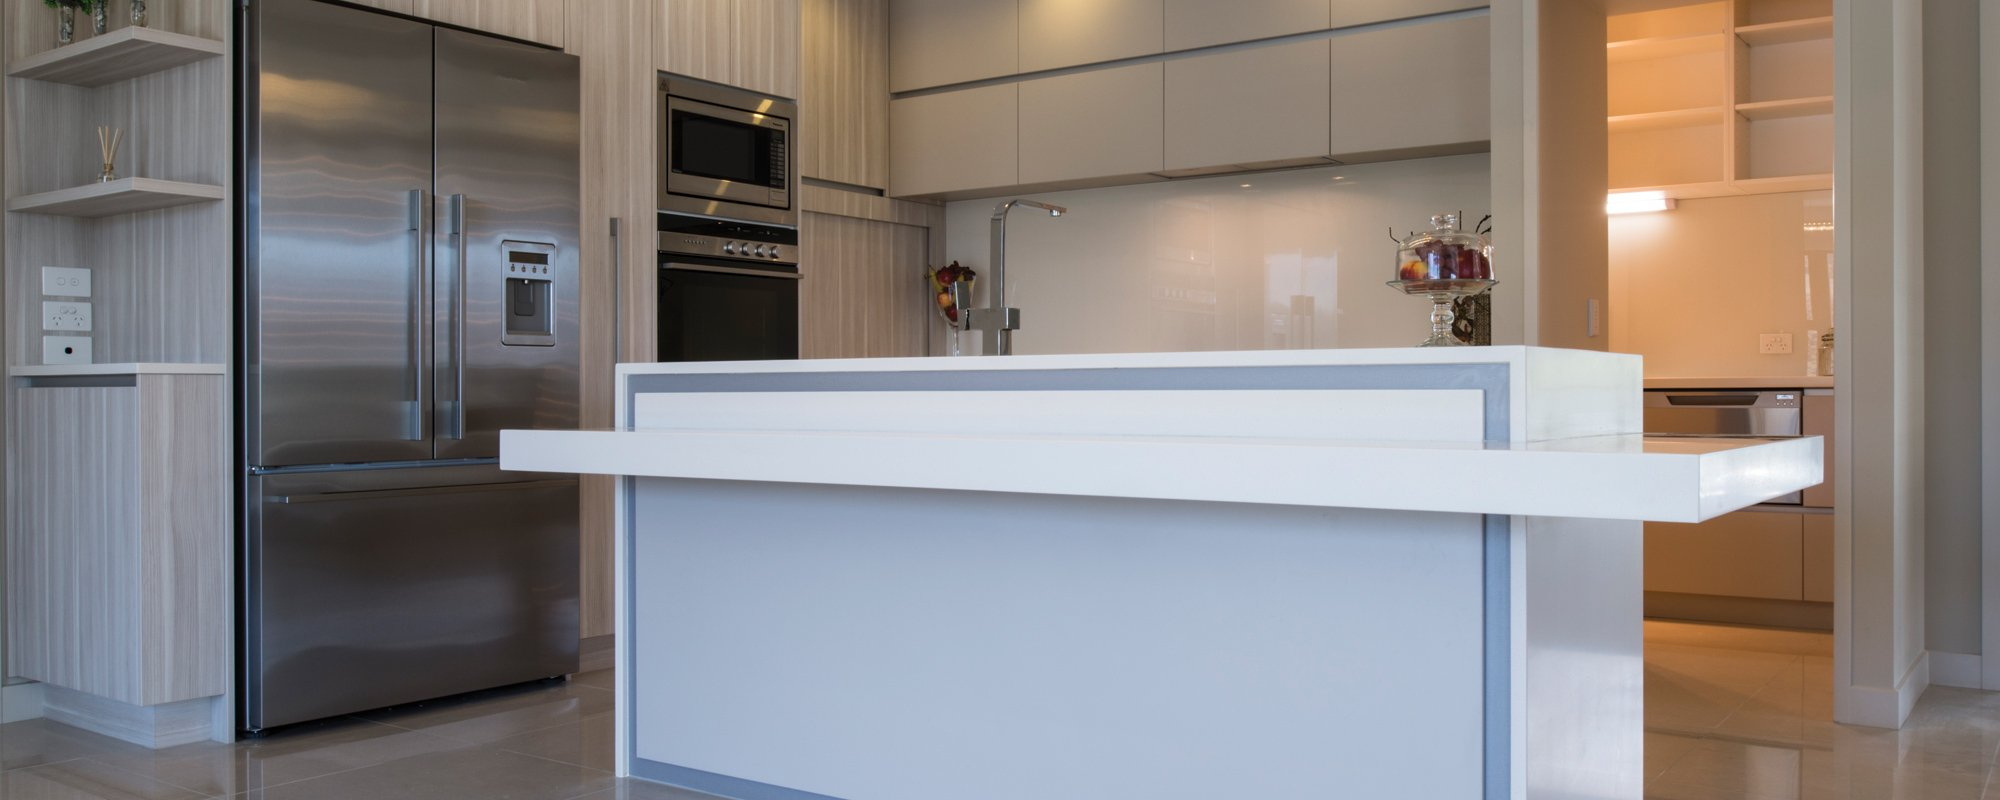 View of the cabiet system installed in the modern kitchen